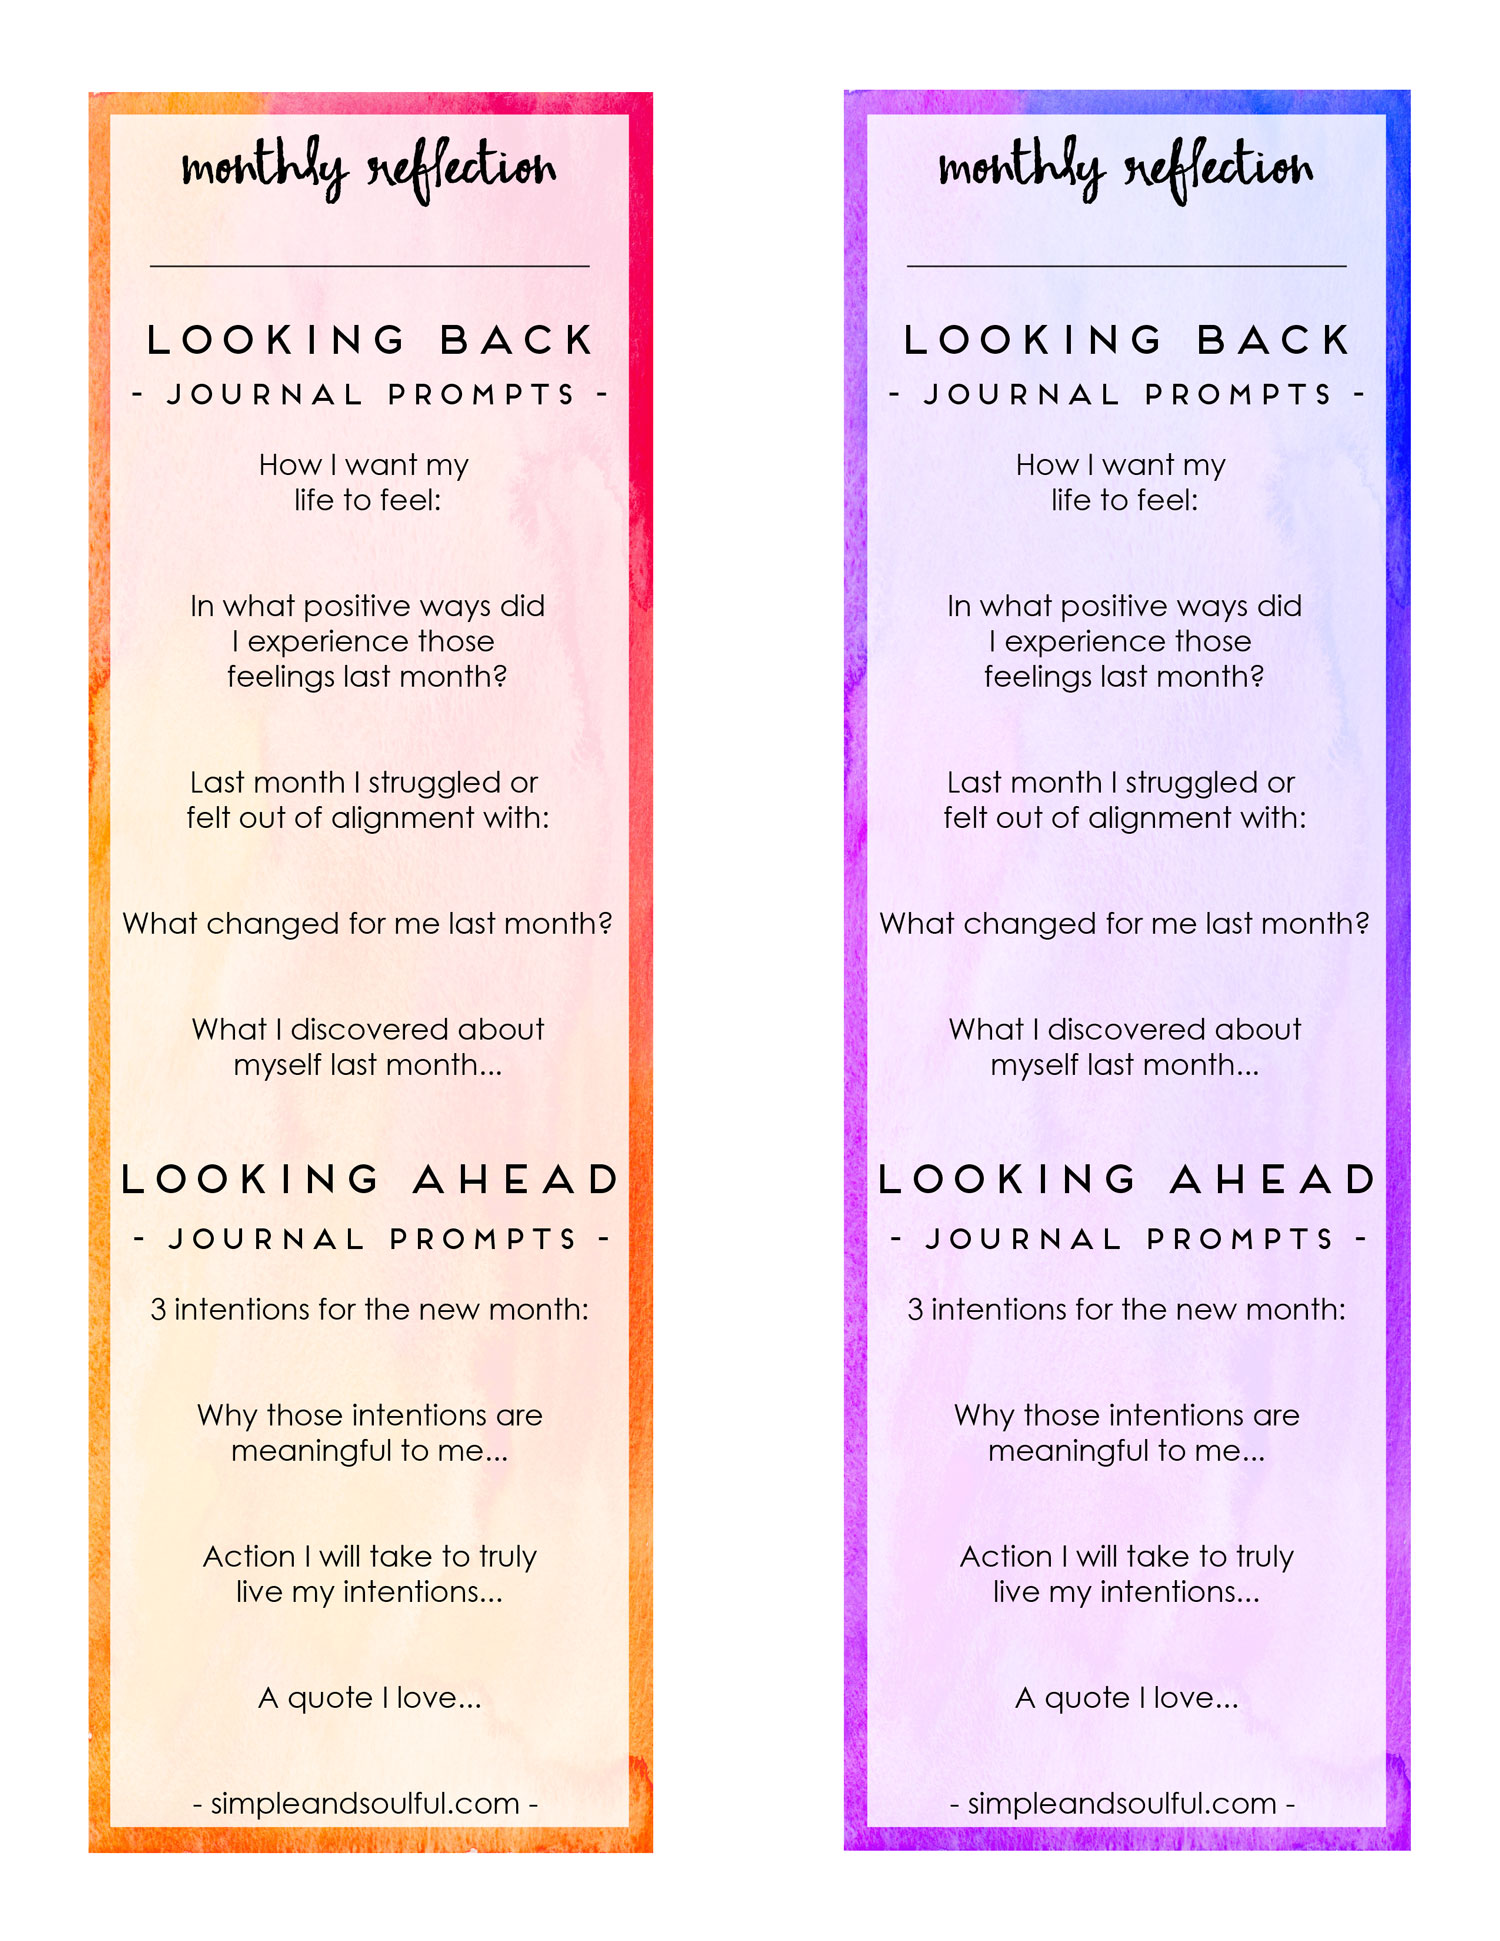 Click on this image to instantly download your printable journal bookmarks. Use them to reflect upon the journey you took in your life and business last month.